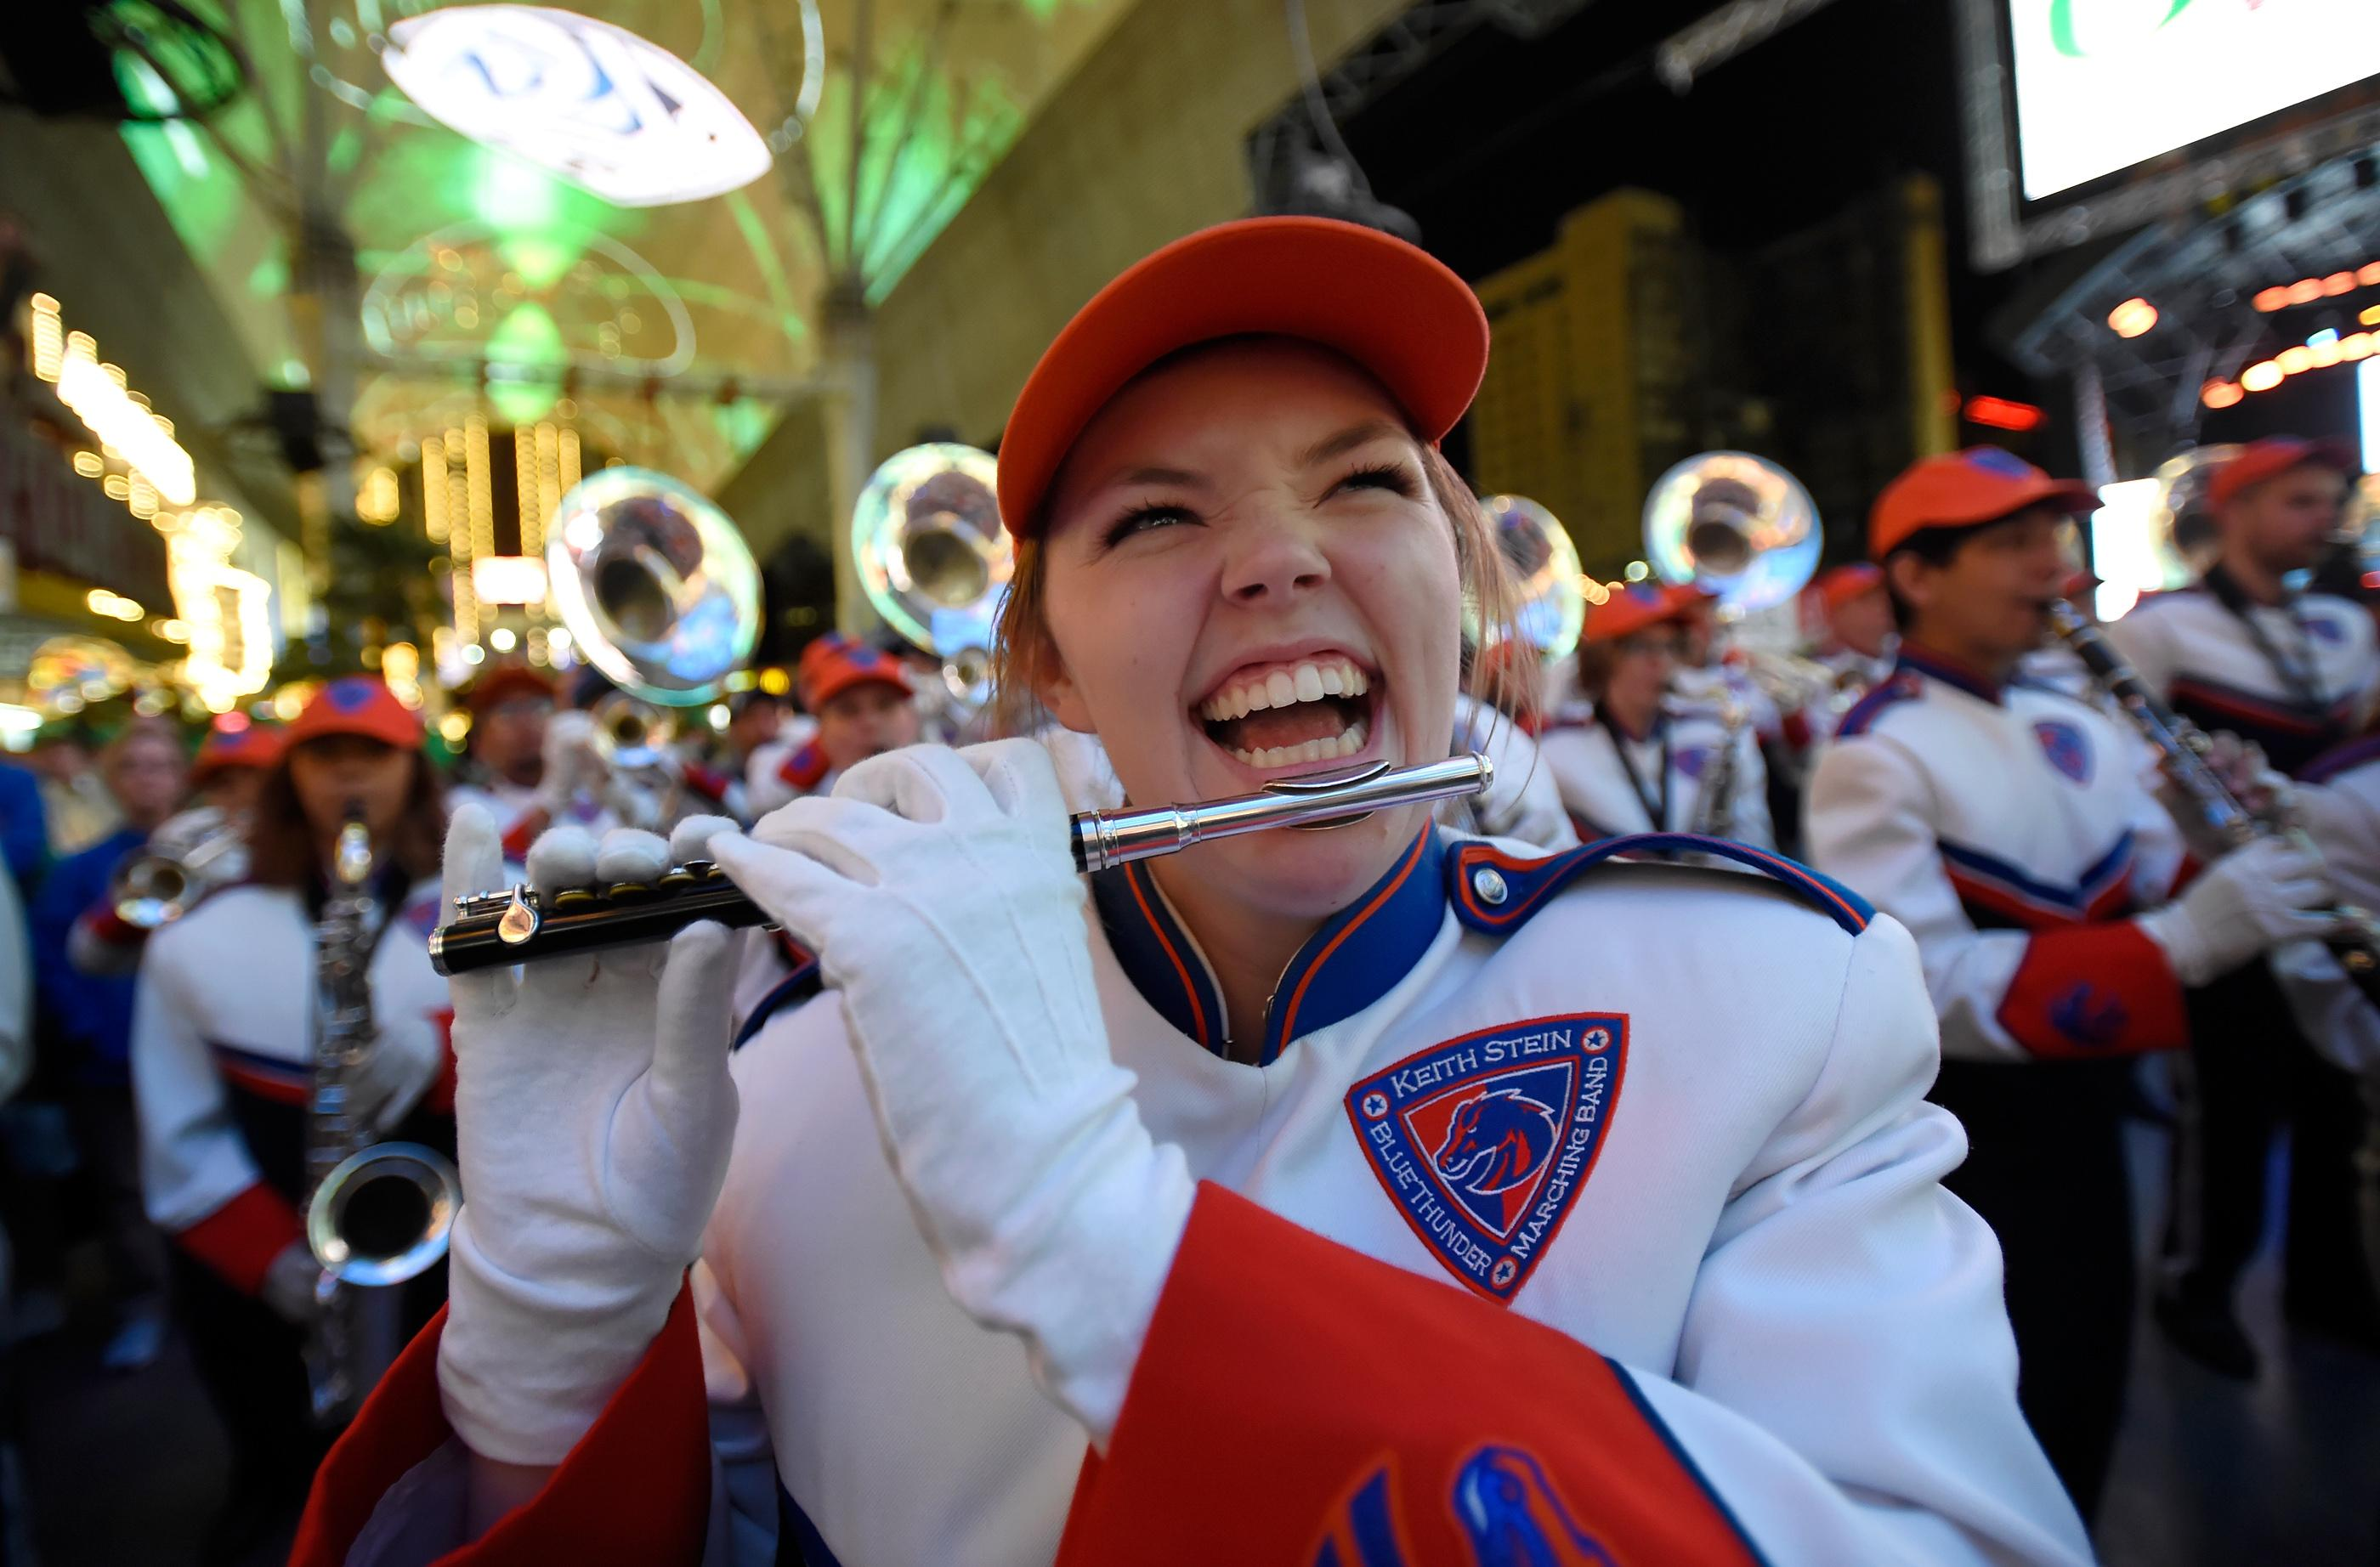 A Boise State marching band member pays her piccolo during a pep rally at the Fremont Street Experience Friday, Dec. 15, 2017, in Las Vegas. The Boise State Bronco will take on the Oregon Ducks in the 26th edition of the Las Vegas Bowl at Sam Boyd Stadium on Saturday. CREDIT: David Becker/Las Vegas News Bureau